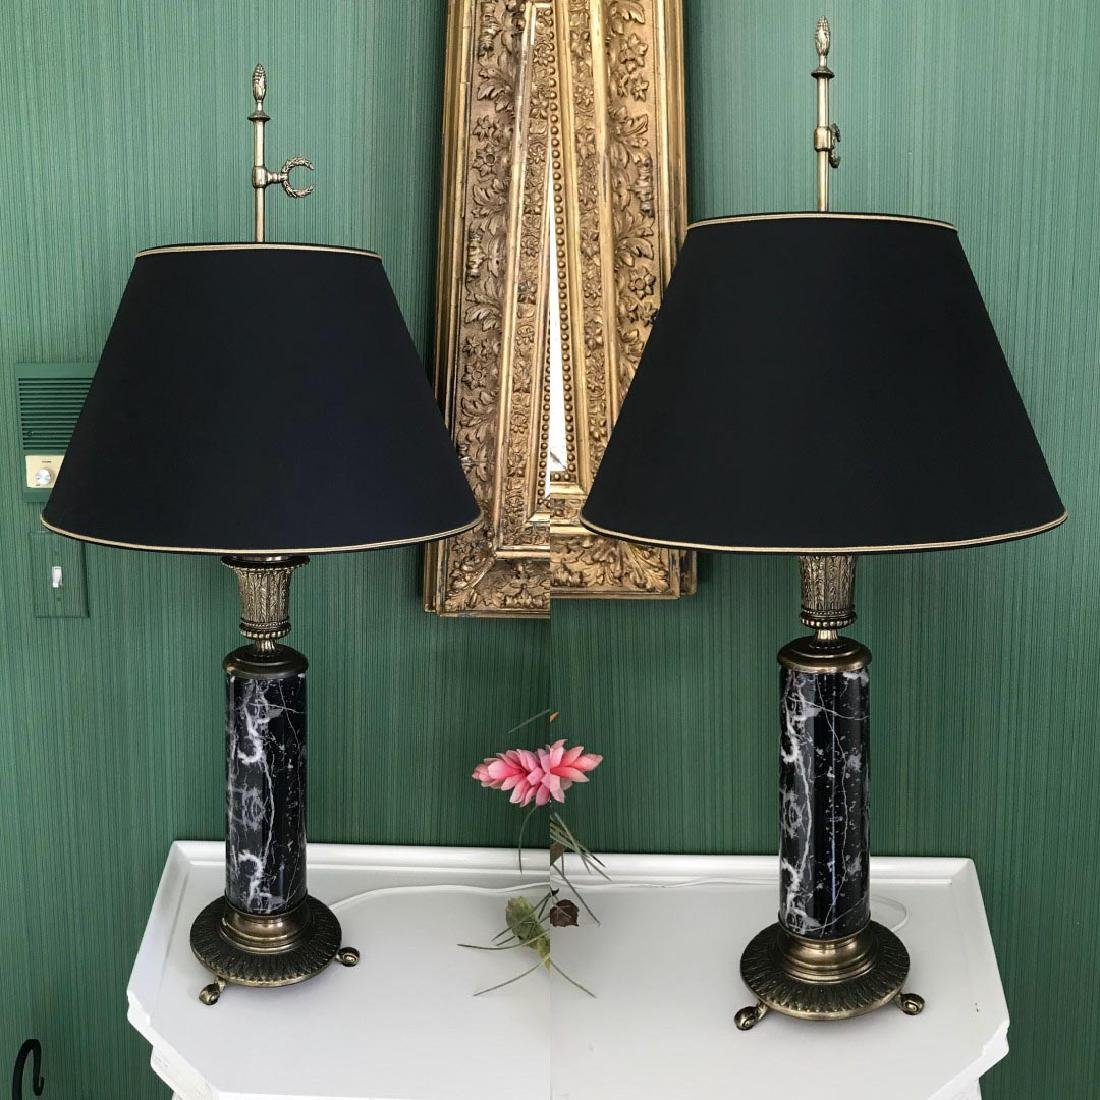 Pair of Brass & Marble Lamps - Black marble with white